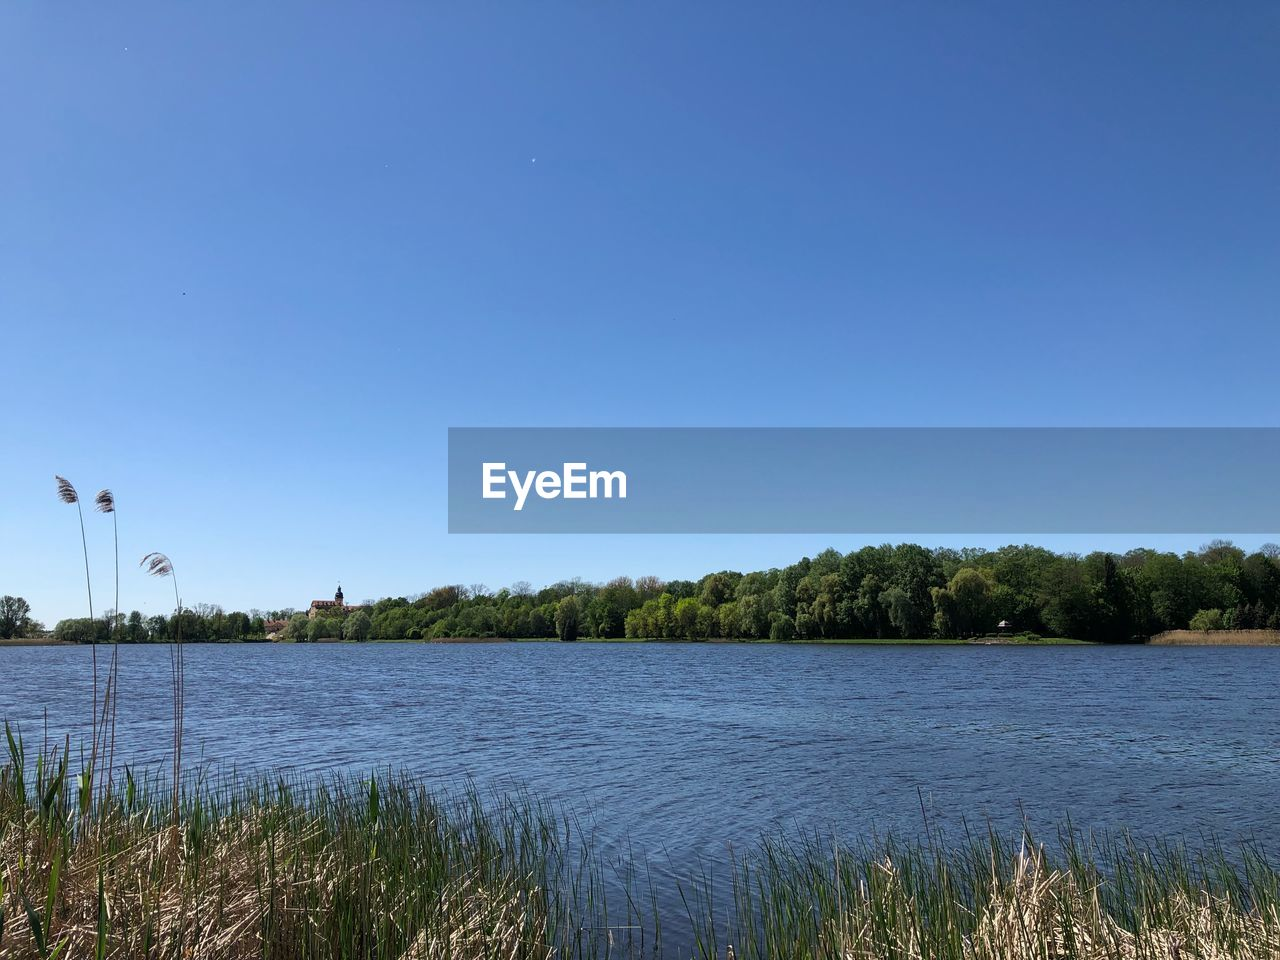 sky, water, plant, tree, clear sky, blue, lake, copy space, nature, scenics - nature, beauty in nature, tranquility, day, no people, tranquil scene, outdoors, non-urban scene, grass